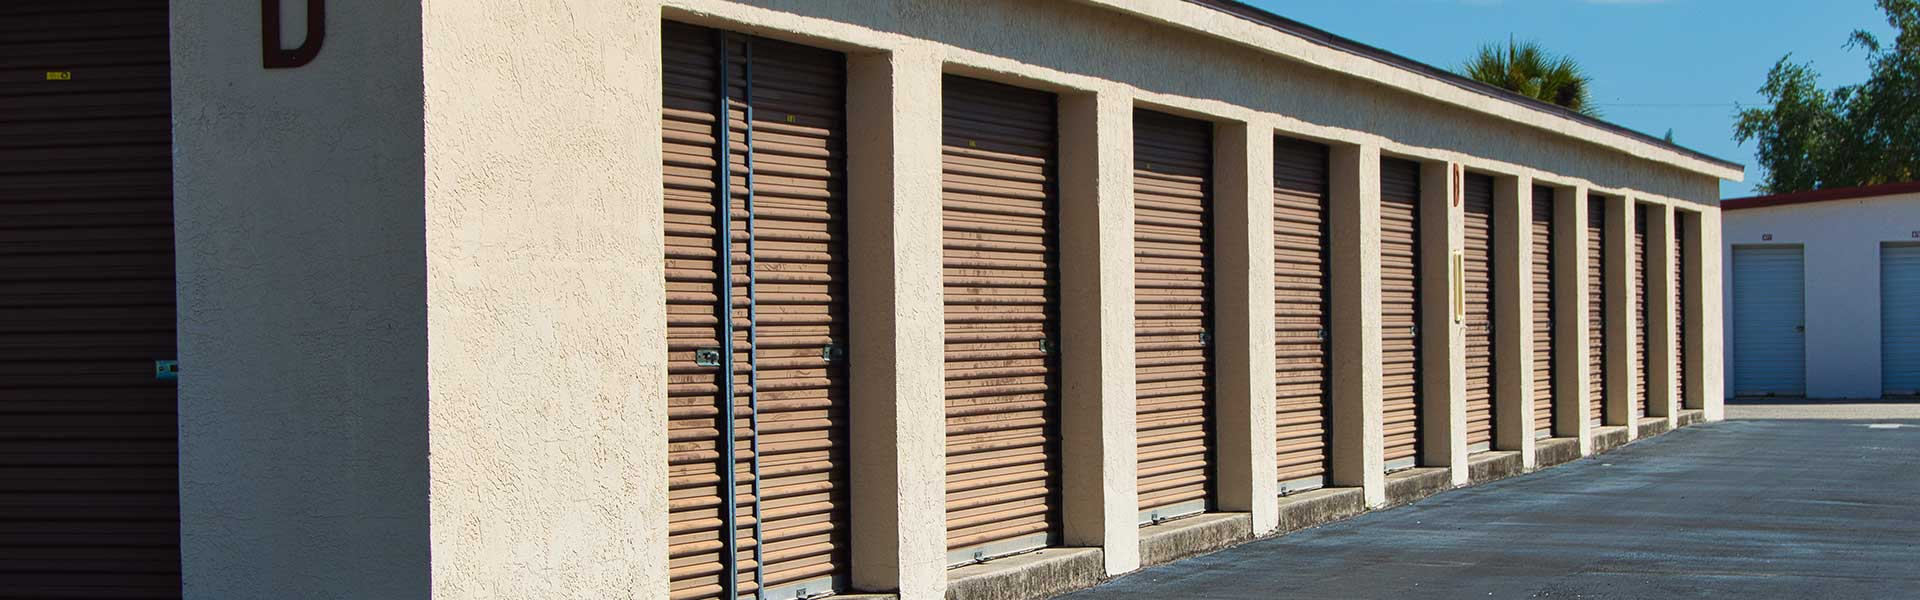 This is a photo of a row of self storage units